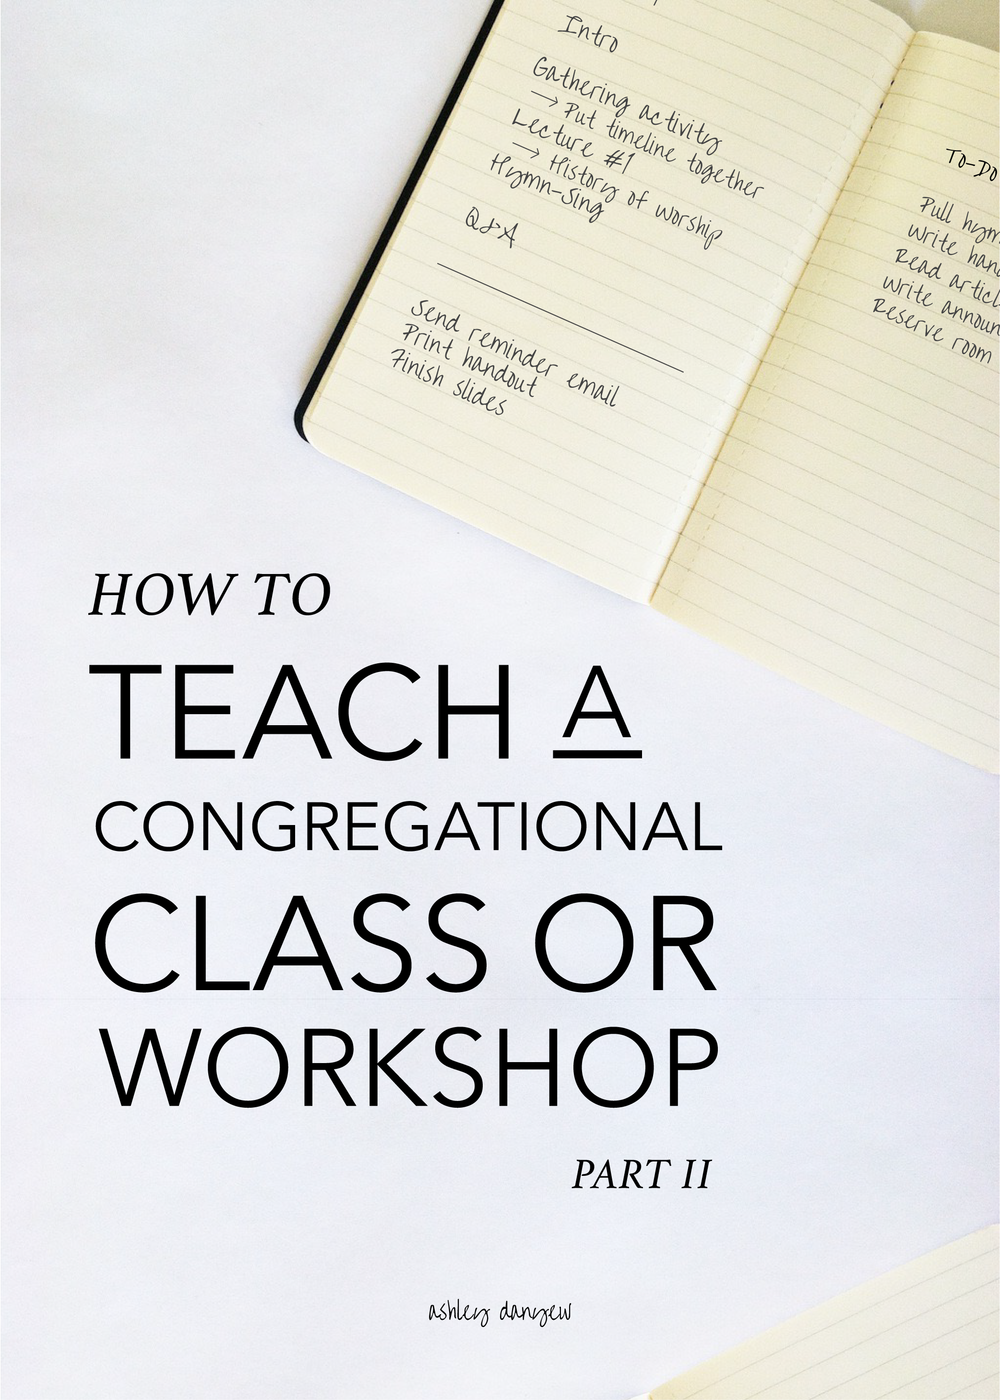 Copy of How to Teach a Congregational Class or Workshop - Part II